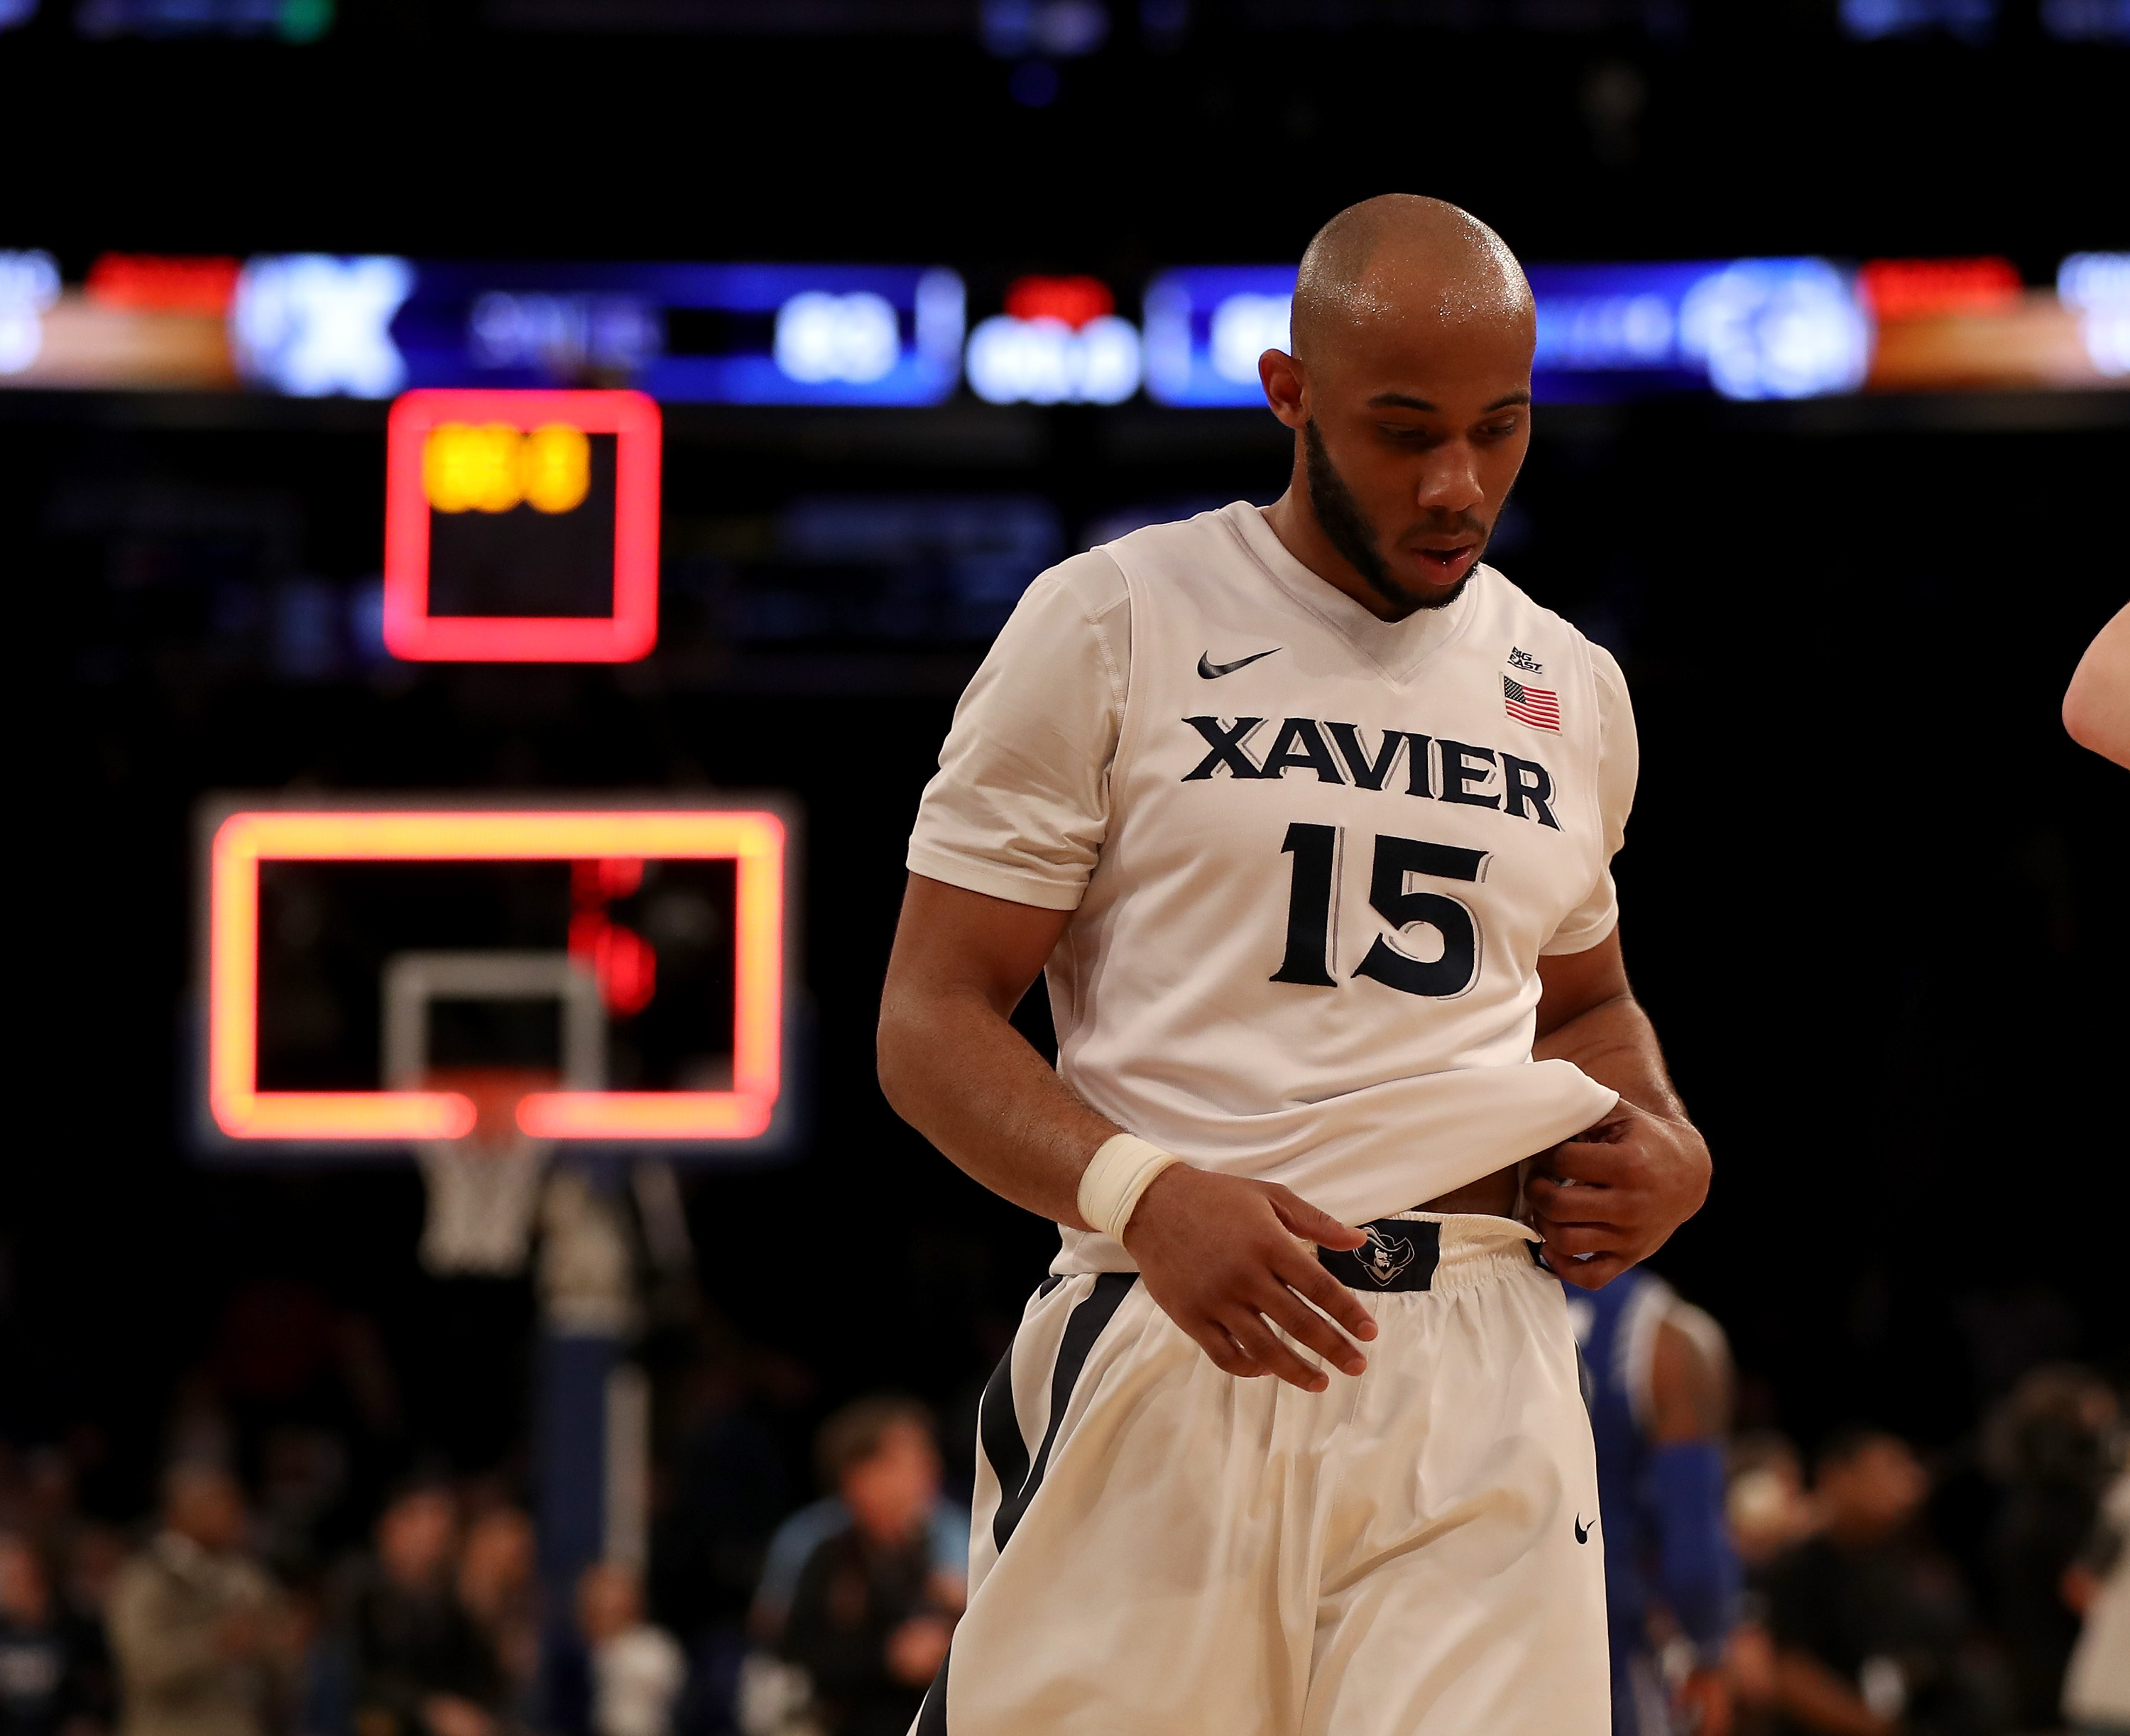 NEW YORK, NY - MARCH 11:  Myles Davis #15 of the Xavier Musketeers walks off the court after the loss to the Seton Hall Pirates during the semifinals of the Big East Basketball Tournament on March 11, 2016  at Madison Square Garden in New York City.The Seton Hall Pirates defeated the Xavier Musketeers 87-83.  (Photo by Elsa/Getty Images)